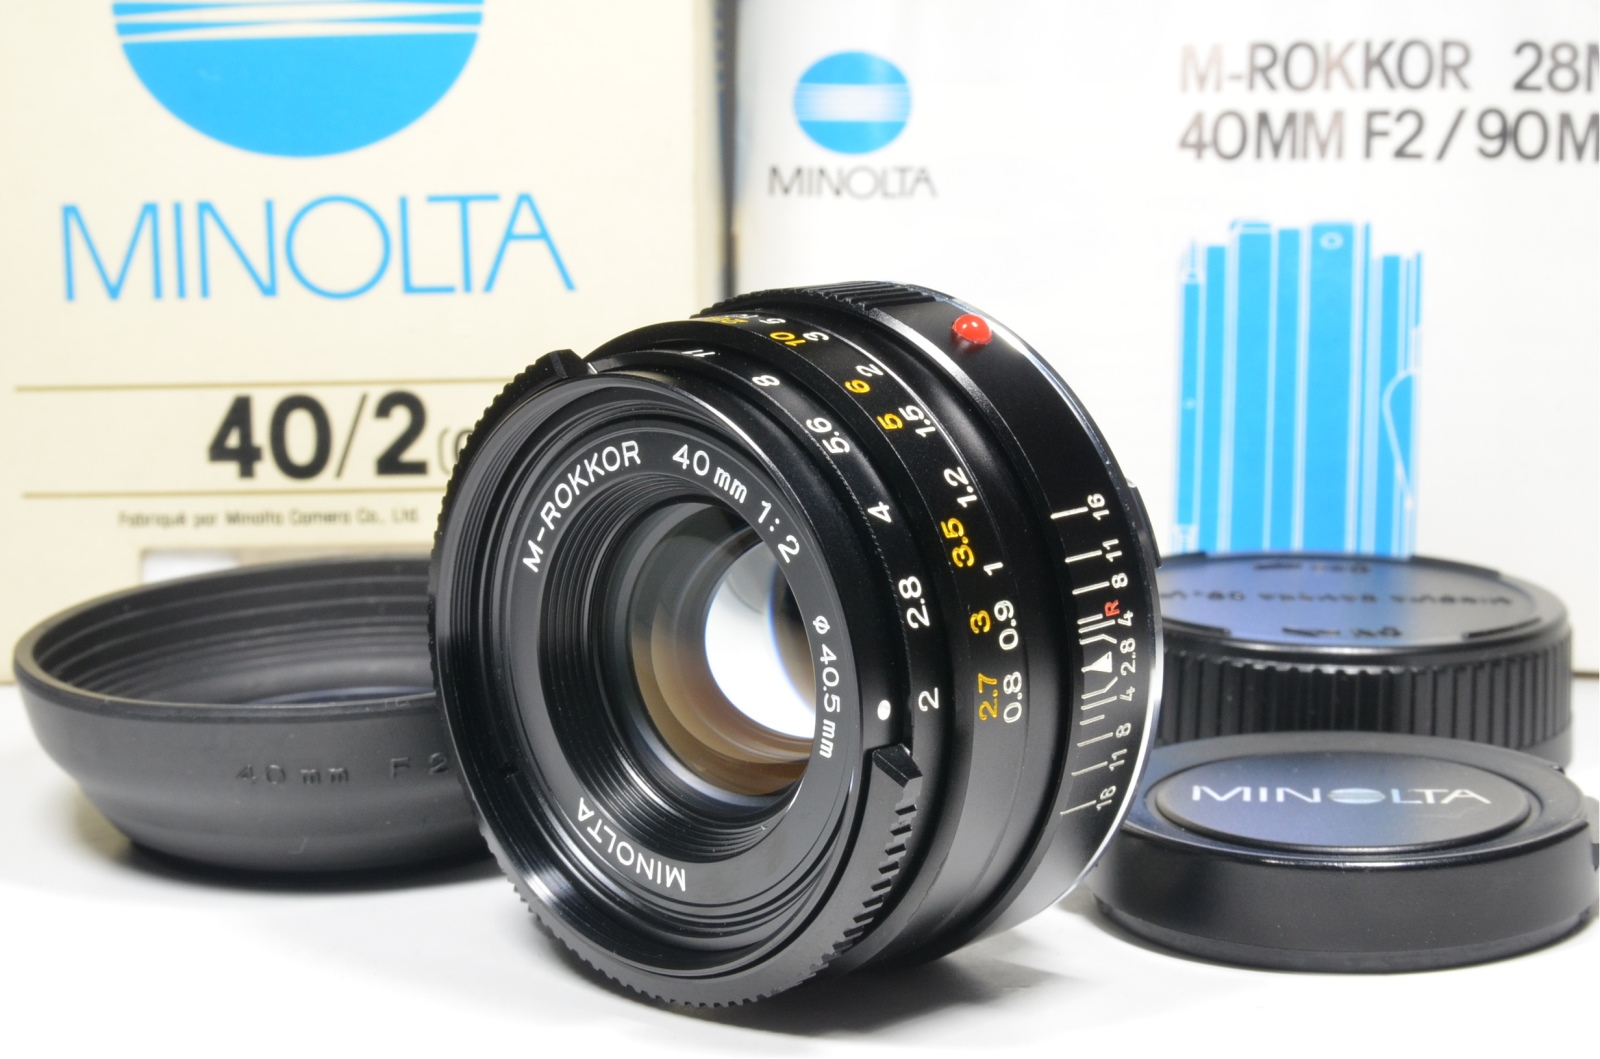 minolta cle film camera with 3 lenses m-rokkor 40mm f2, 28mm f2.8 and 90mm f4